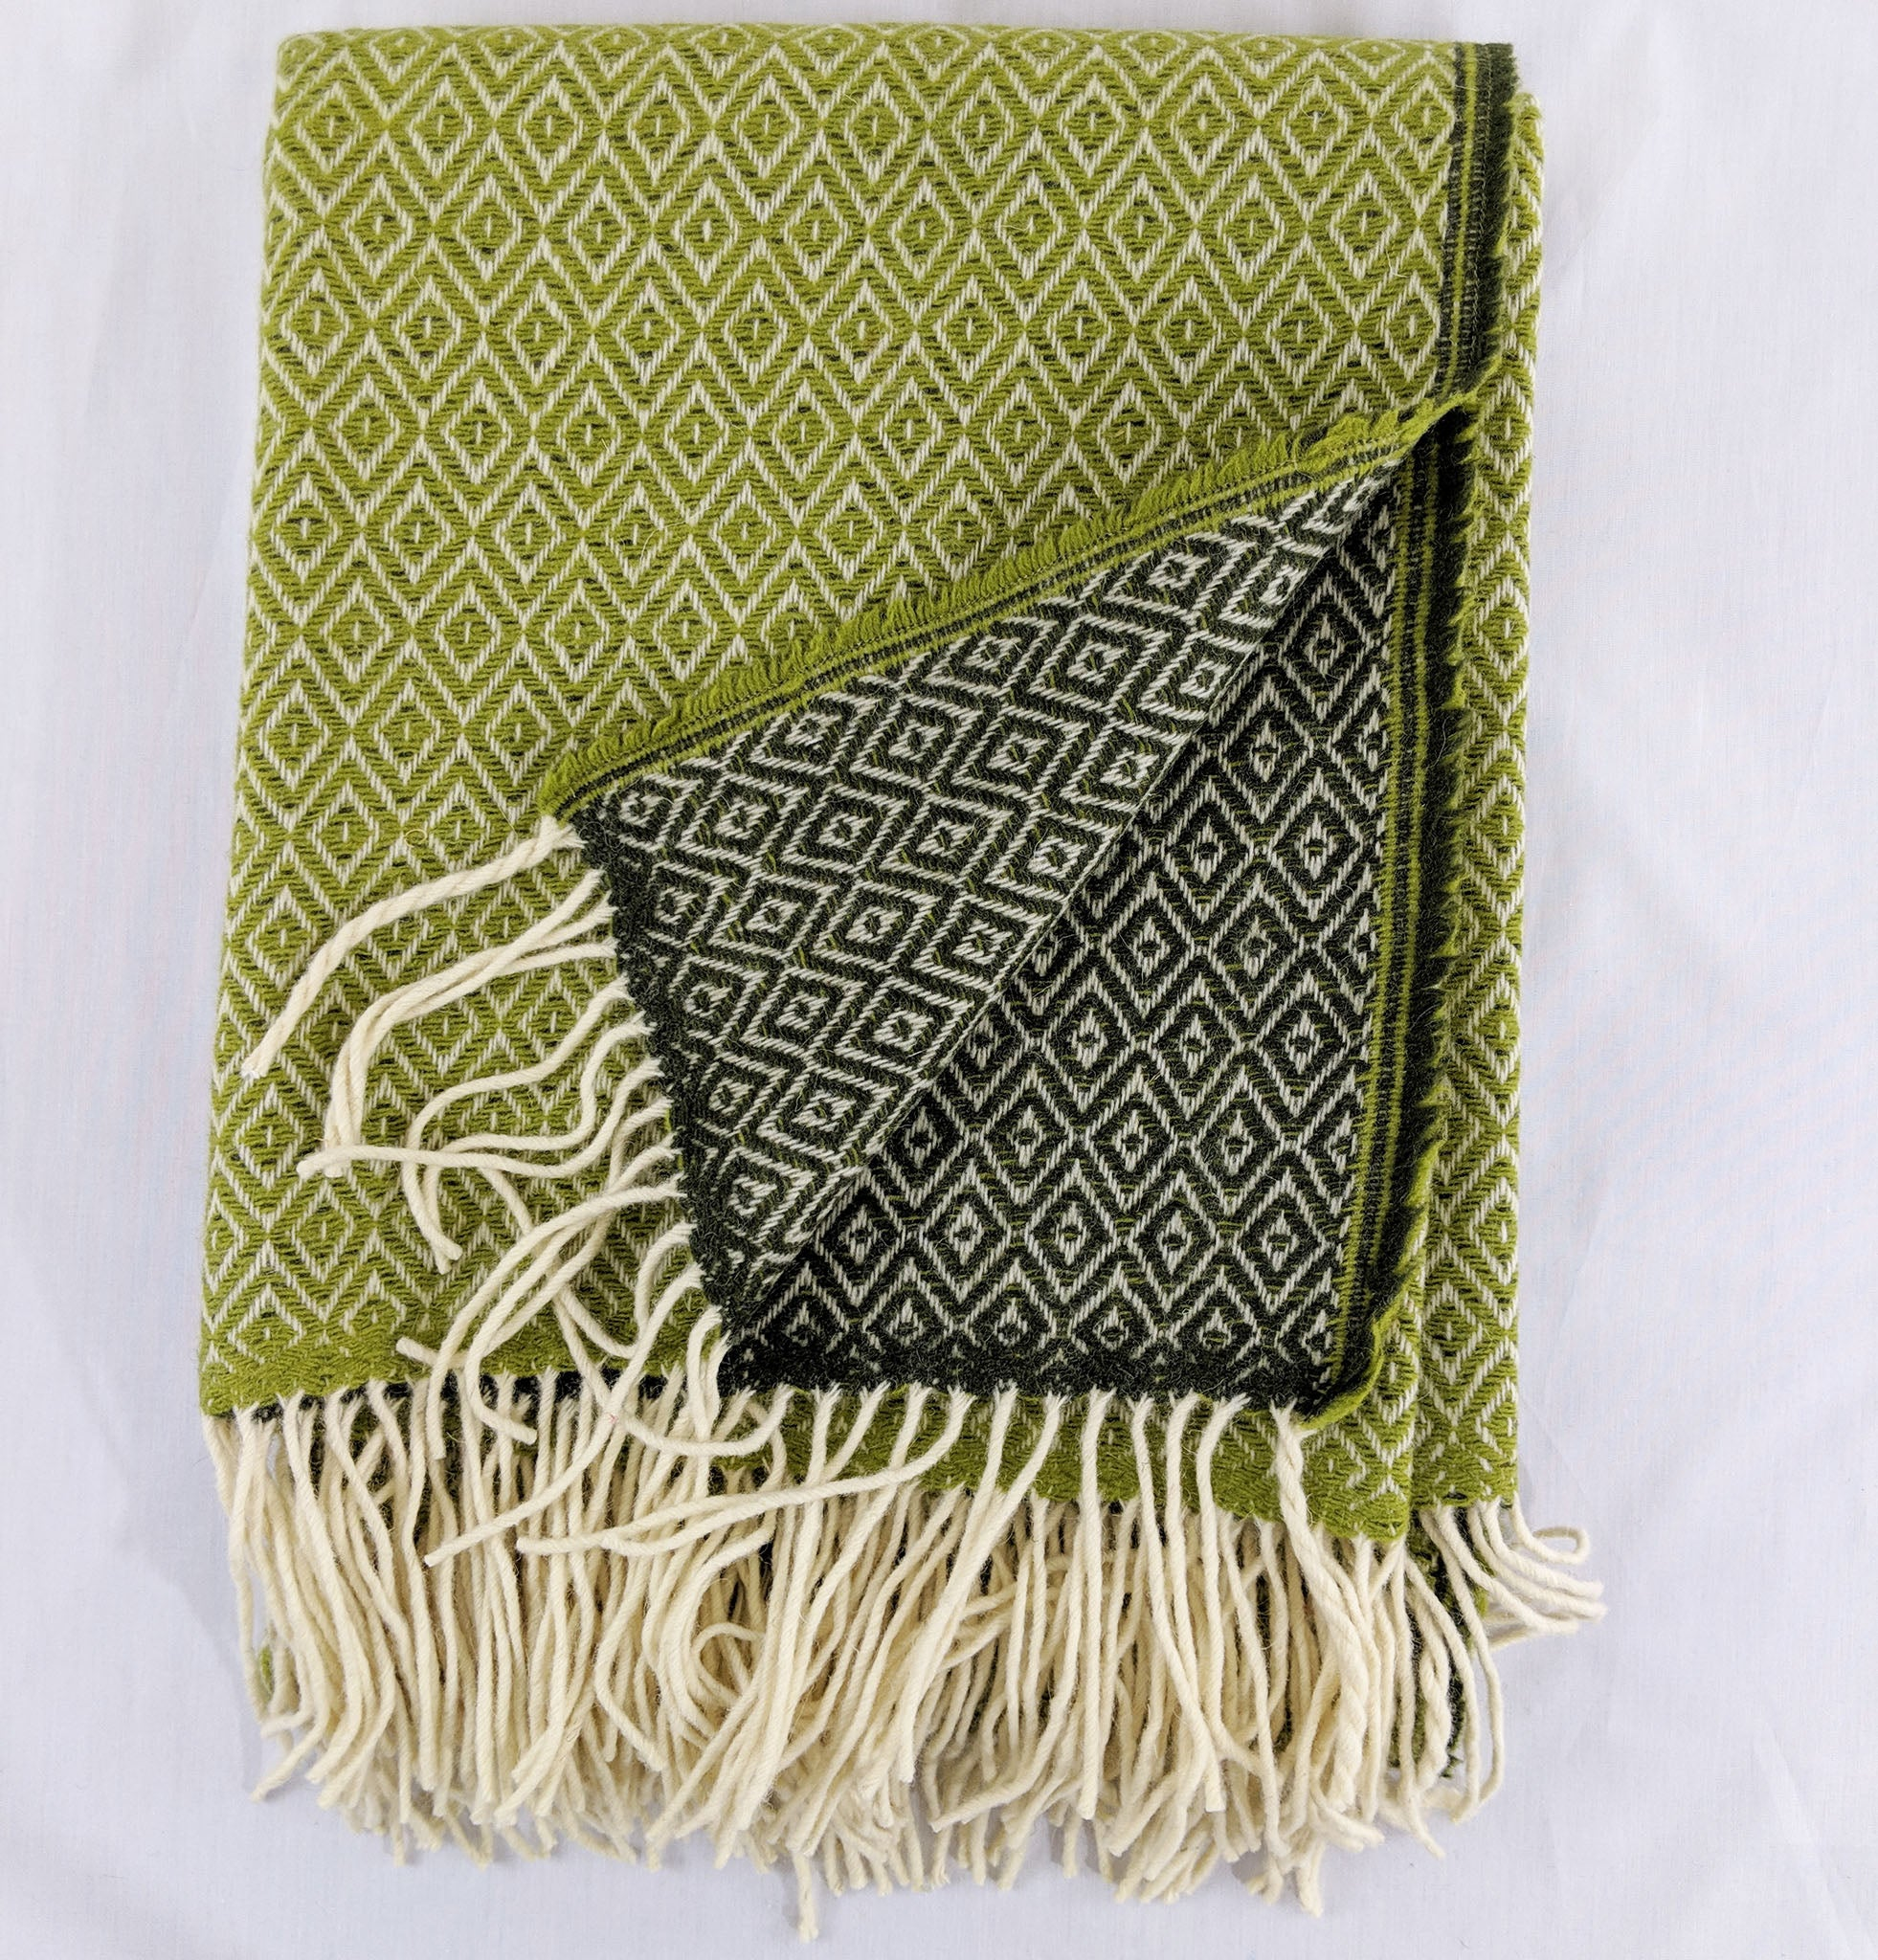 Dark green and light green Merino throw with double lozenge pattern against white background